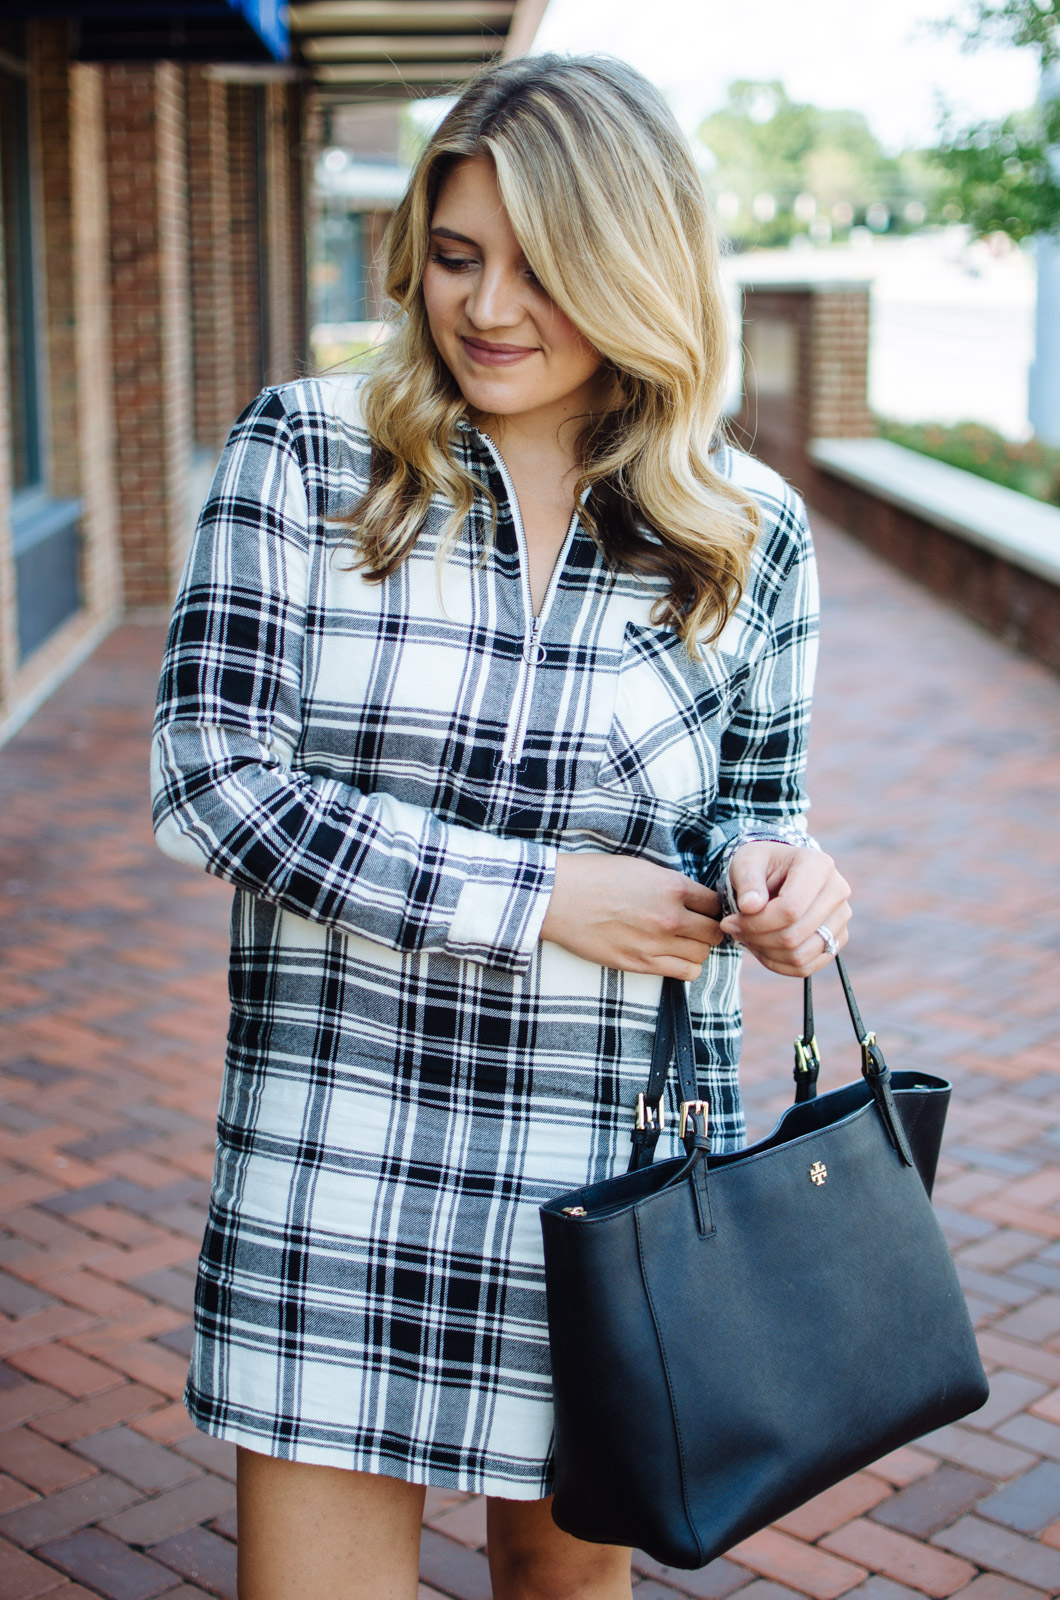 dresses for fall - flannel plaid dress outfit | For the cutest Fall outfits click through to bylaurenm.com!